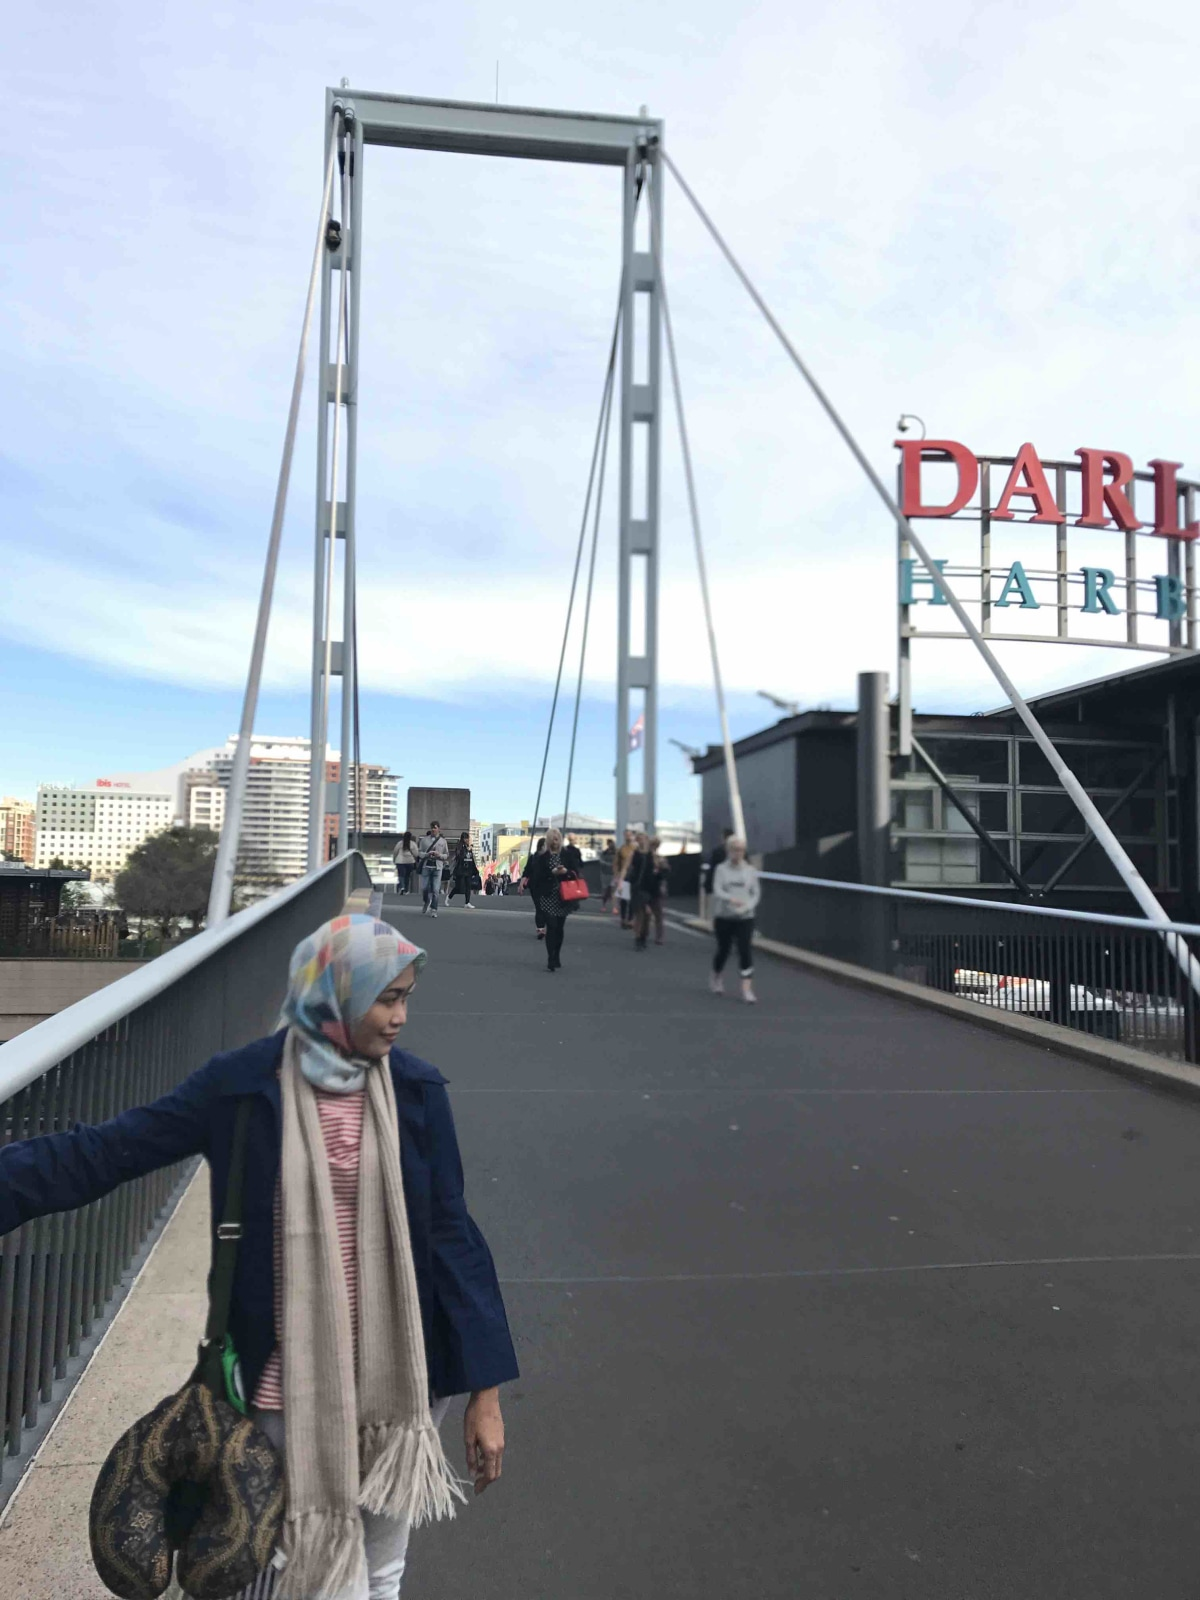 Our first stop, while we can't do check in at the motel, so we are strolling around the city... HerE we are, at the darling harbour...